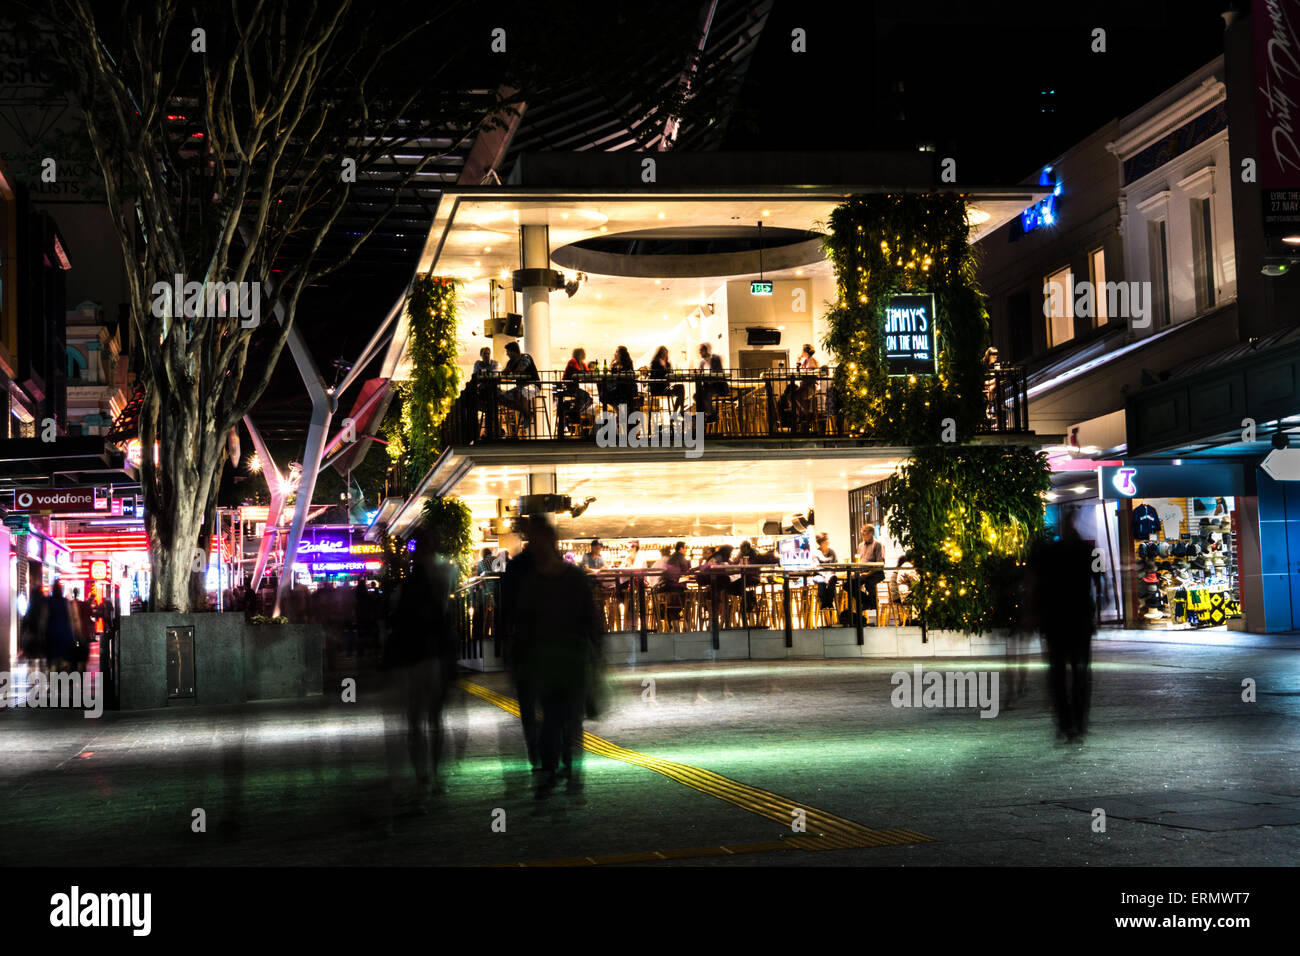 Jimmy's on the Mall Brisbane - Stock Image